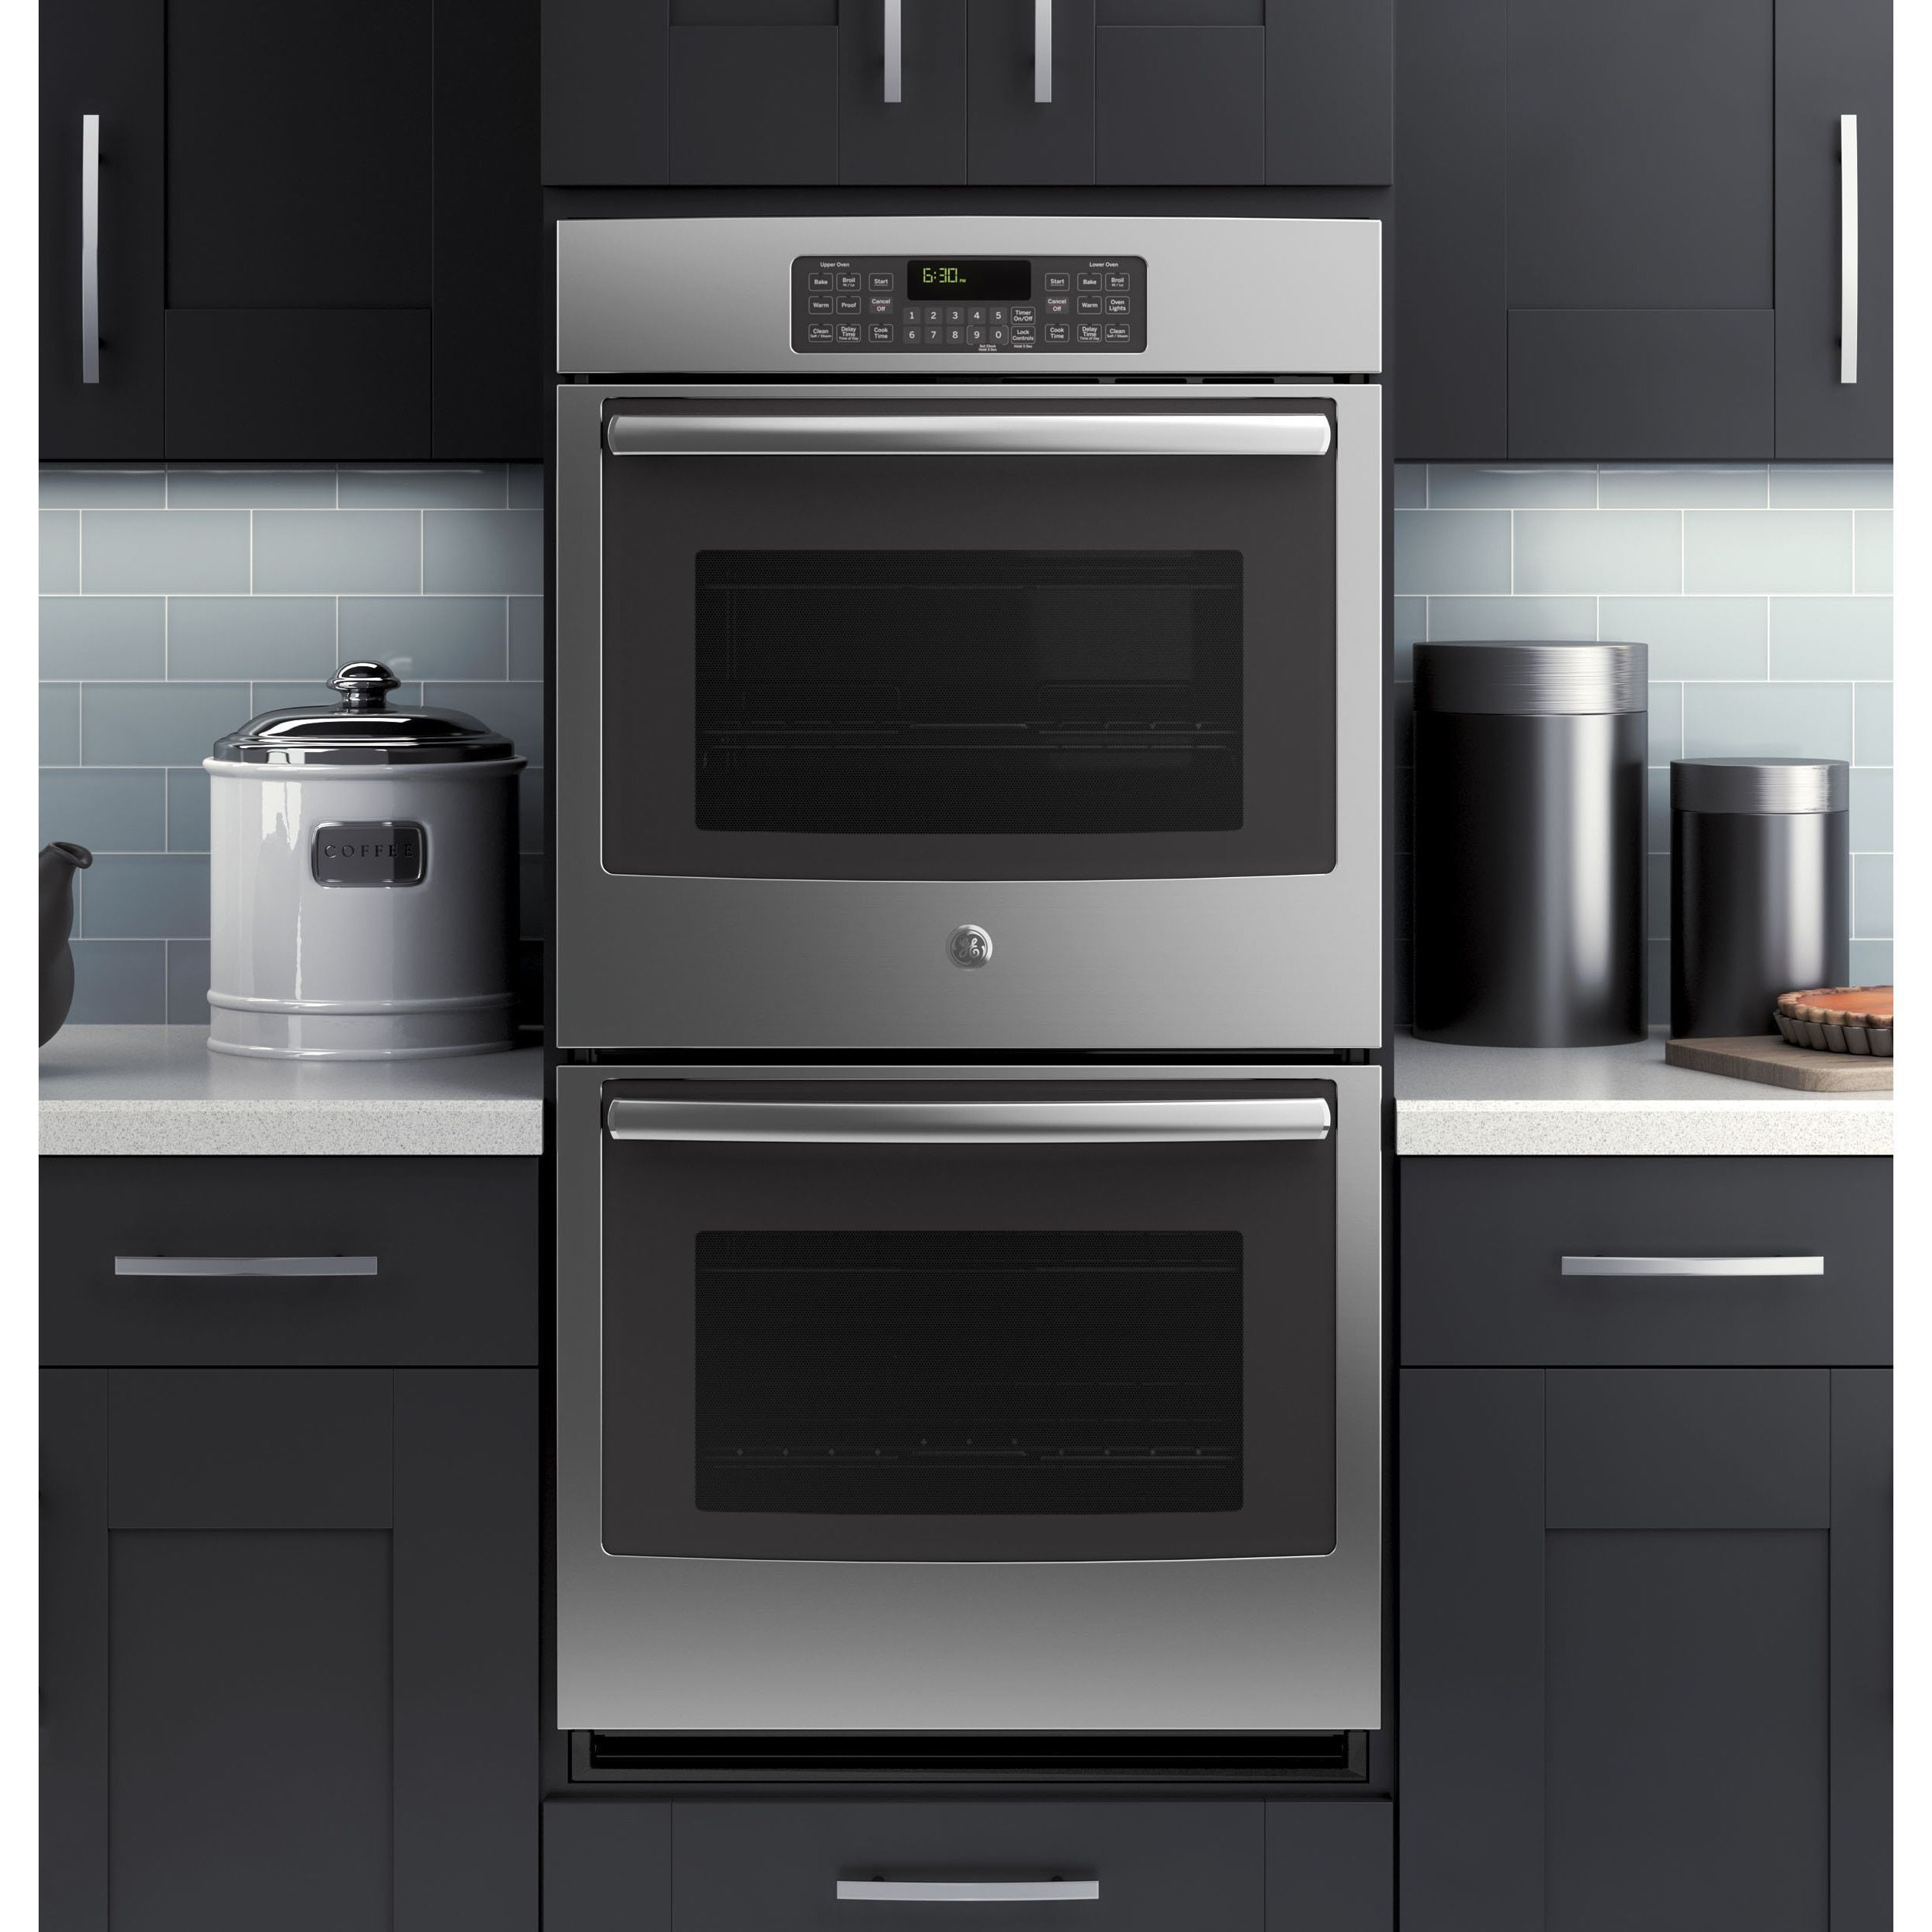 Ge 27 Inch Stainless Steel Silver Built In Double Wall Oven